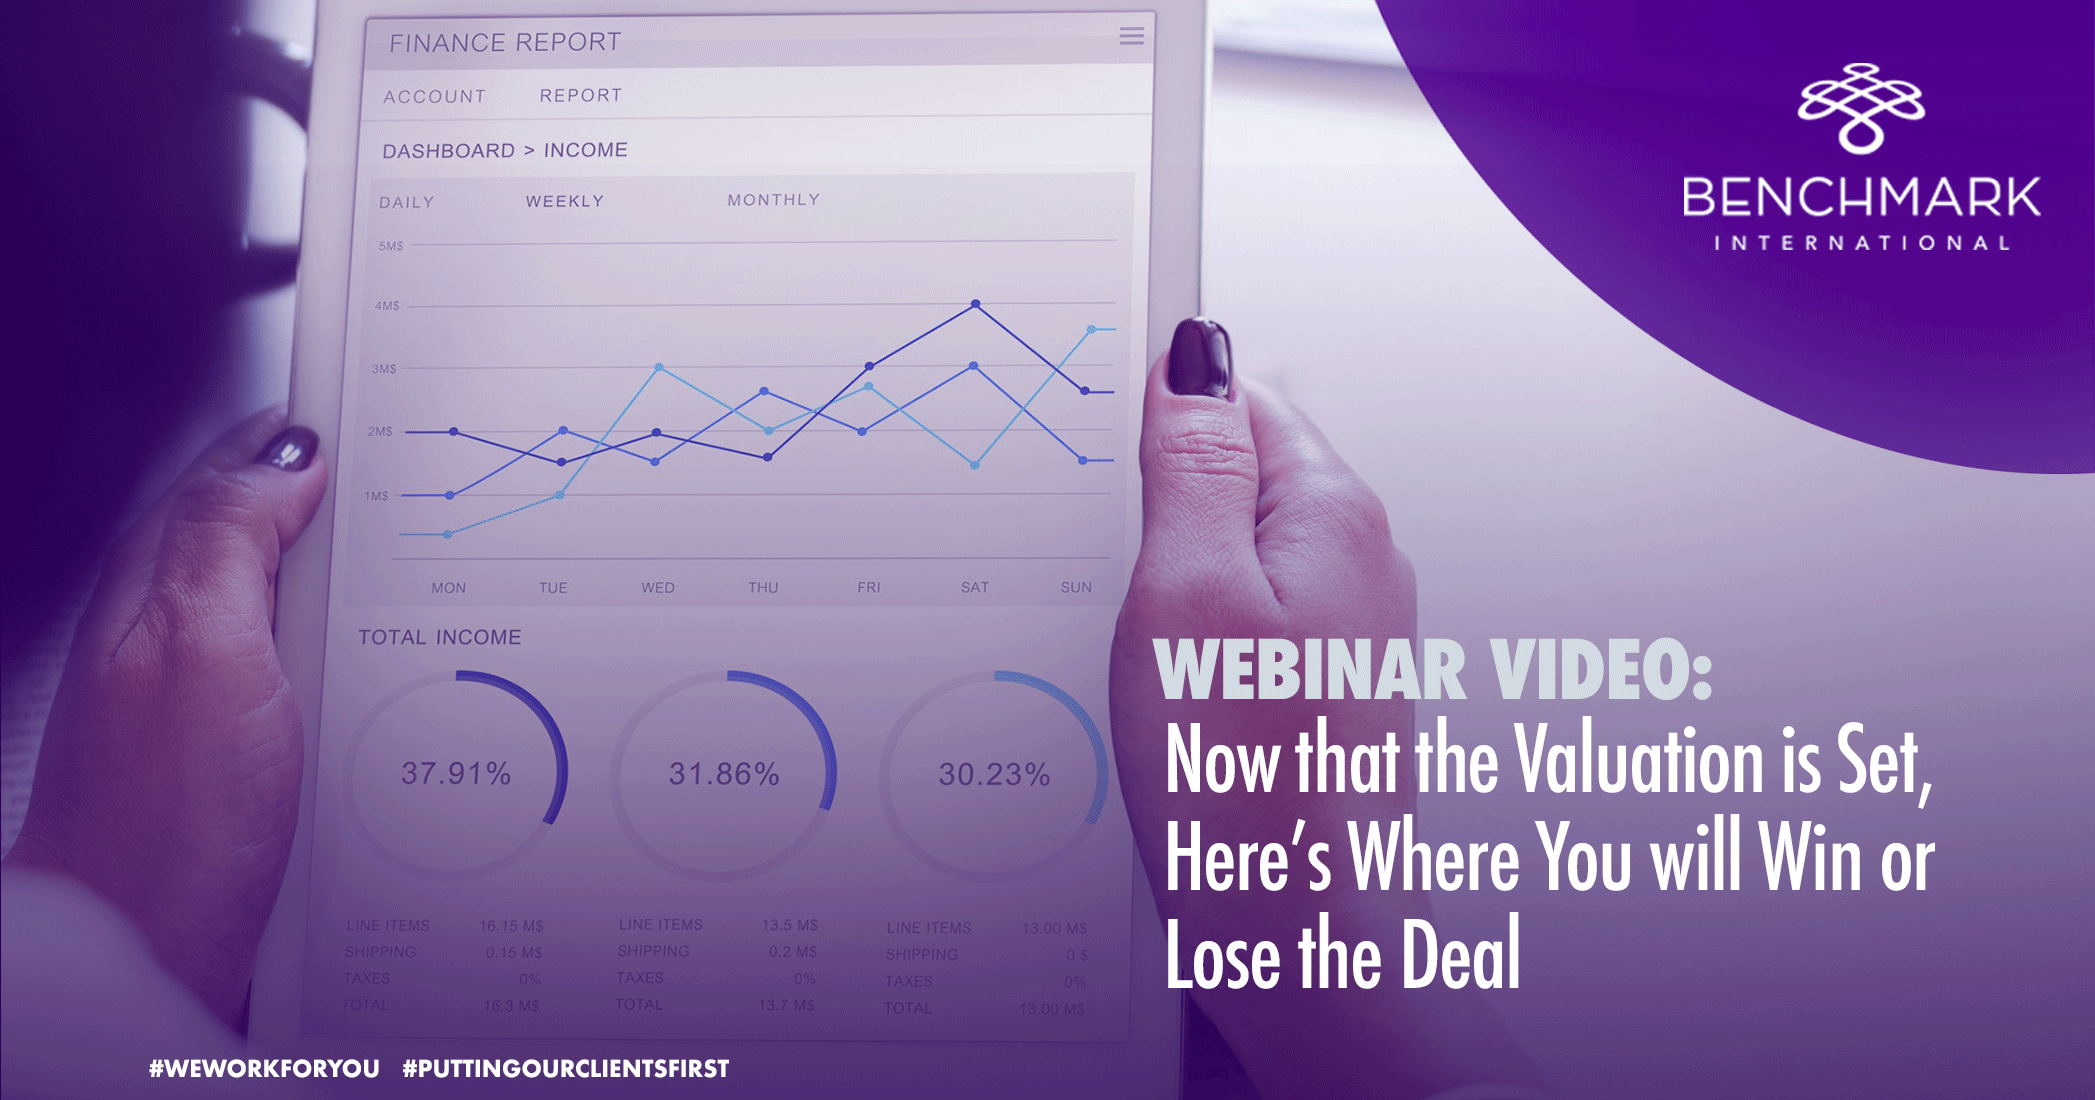 Webinar Video: Now That the Valuation is Set, Here's Where You Will Win or Lose the Deal